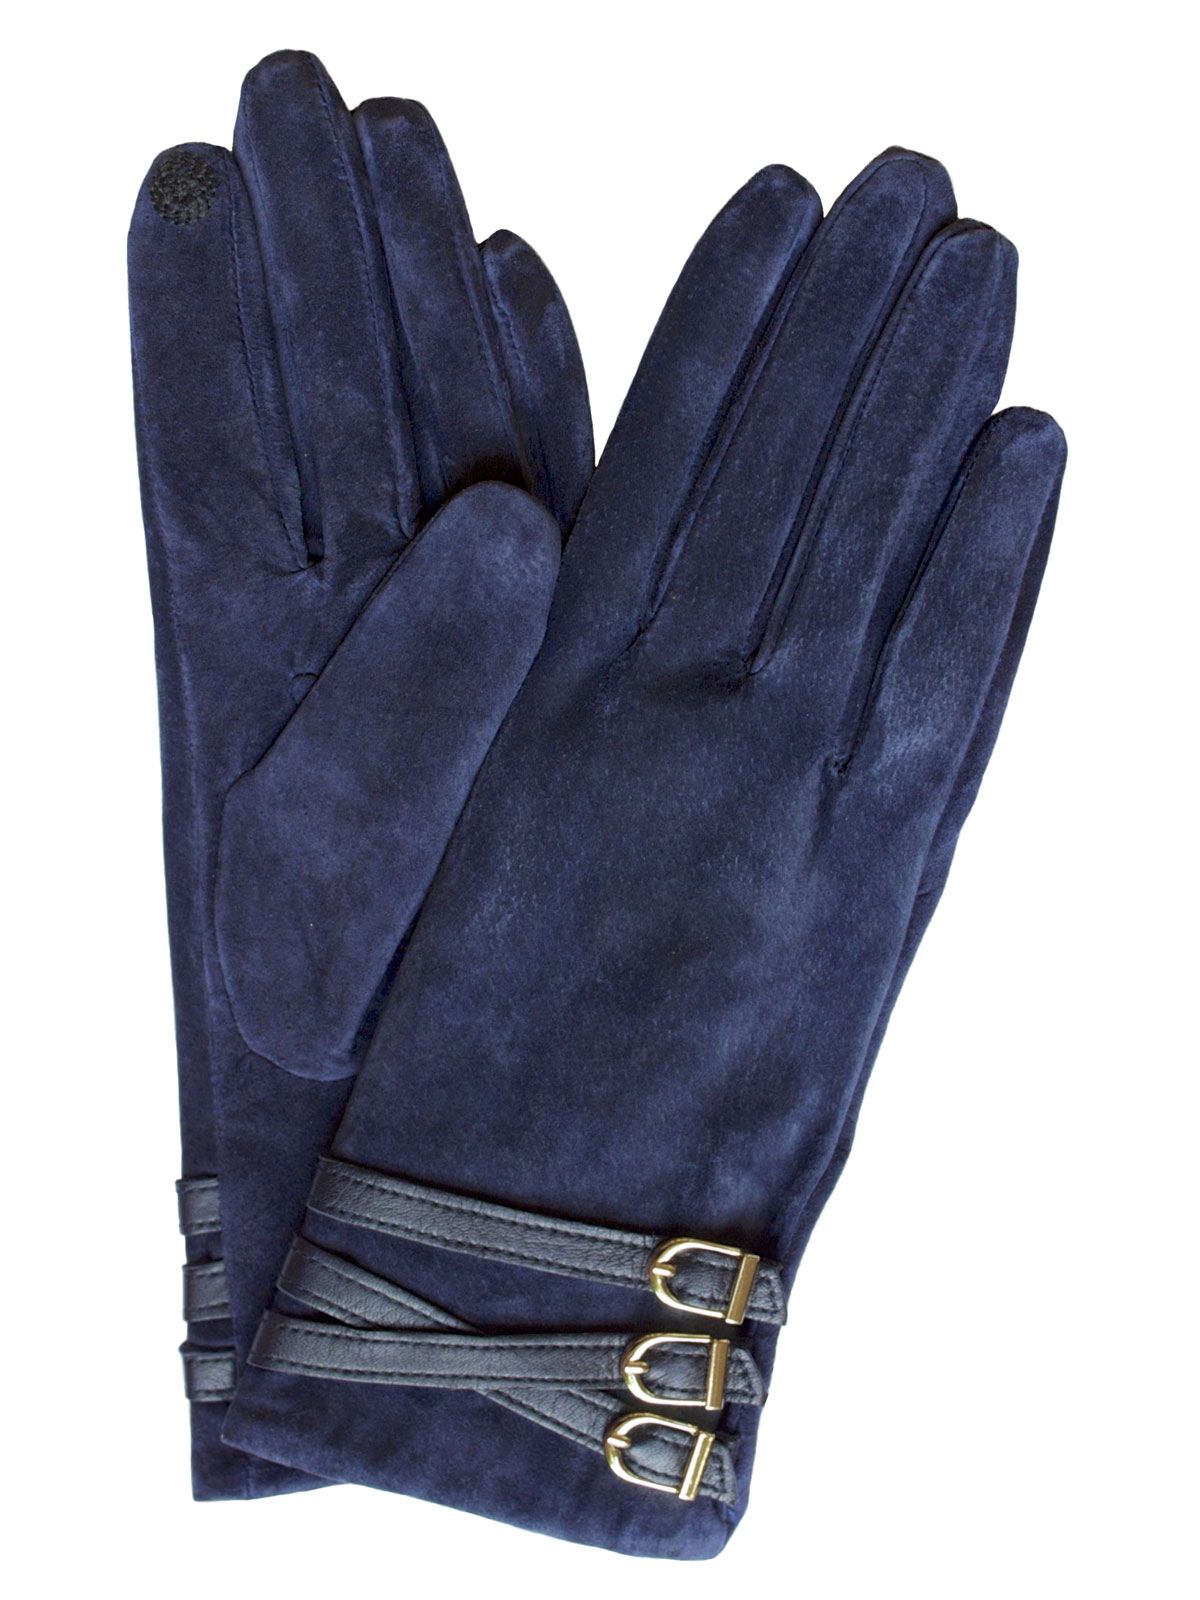 Mens leather touchscreen gloves uk - Dents Women S Suede Touchscreen Gloves 3 Buckle Strap